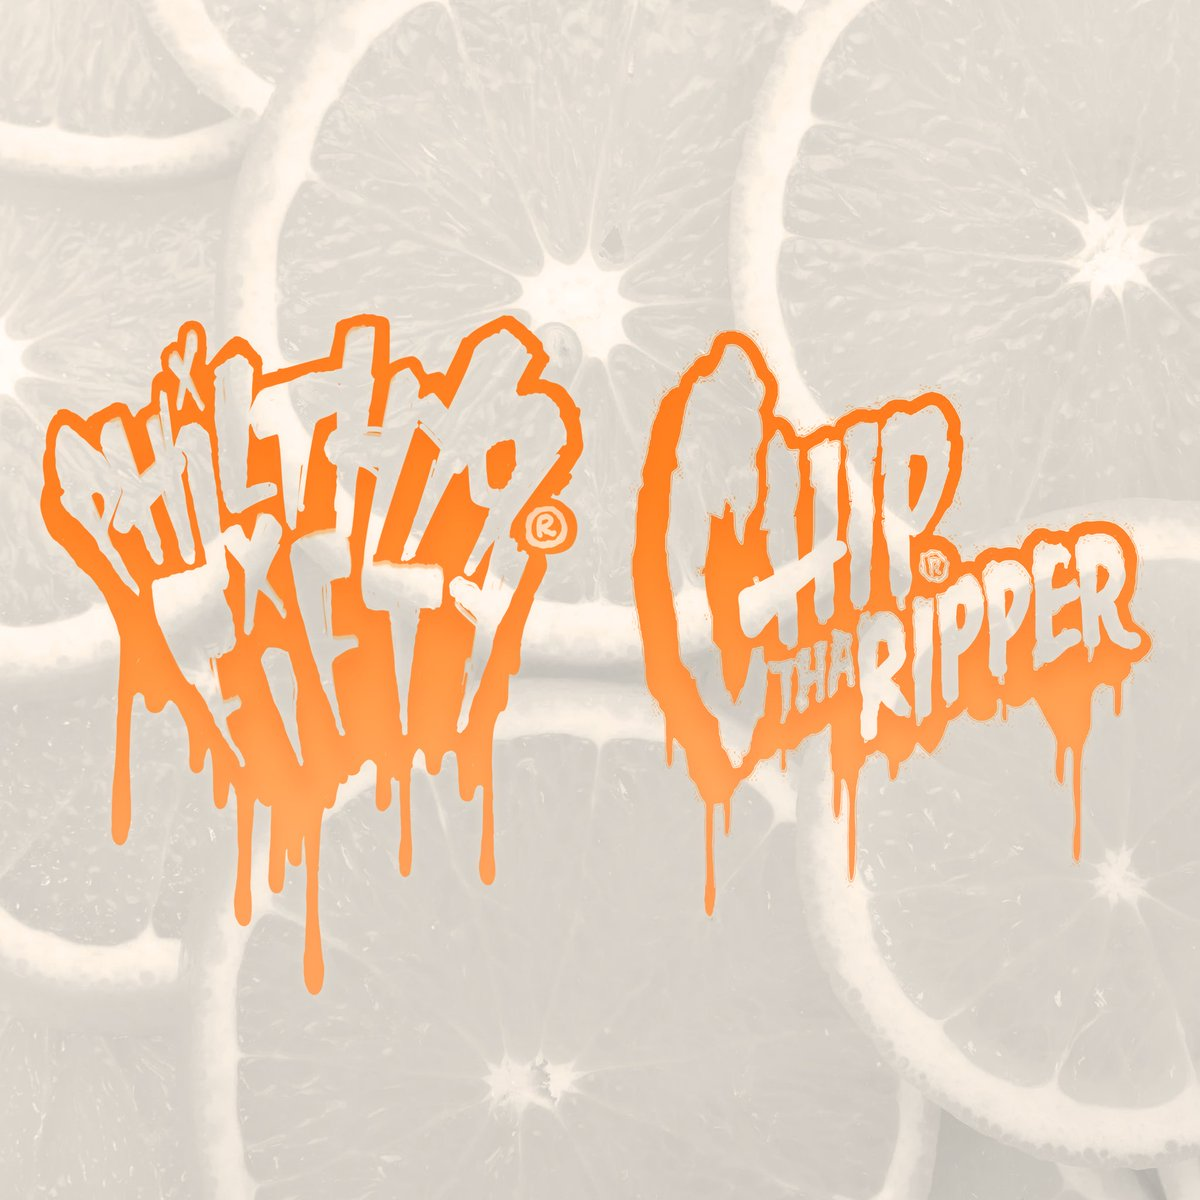 Decided to make some artwork 👨‍🎨 for the @kingchip aka Chip Tha Ripper remix I uploaded to SC a few days ago.. To my surprise its been getting a lot of ❤️ so I spent a little time on this earlier..  #NewMusicFriday #NewMusic #Rap